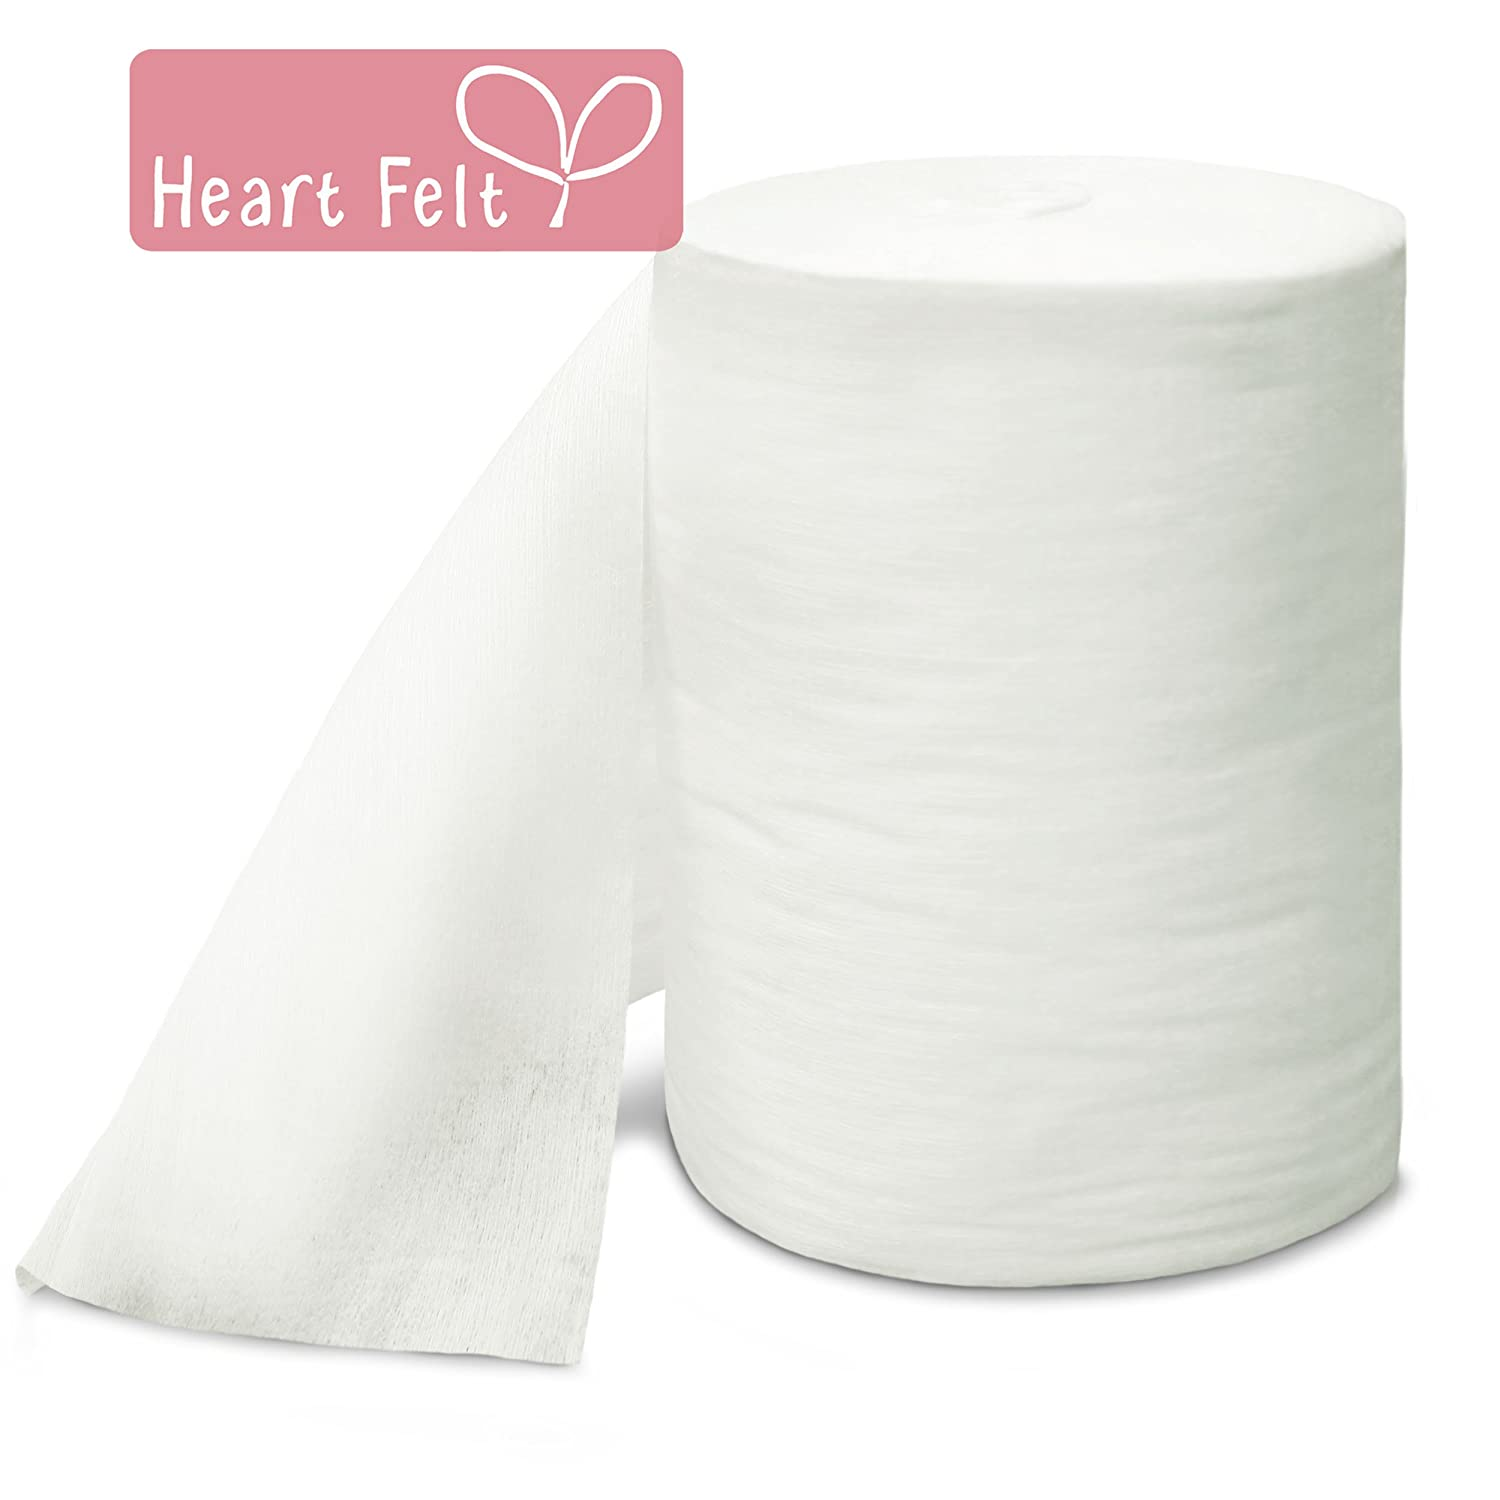 Heart Felt Bamboo Cloth Diaper Liners -100 Sheets. Flushable, Biodegradable and All Natural to Preserve Your Cloth Diapers and Avoid Dealing with Solid Mess. Soft Against Baby's Delicate Skin. Will Not Repel Liquid, Which Can Lead to Leakage. Buy 2 and Sav